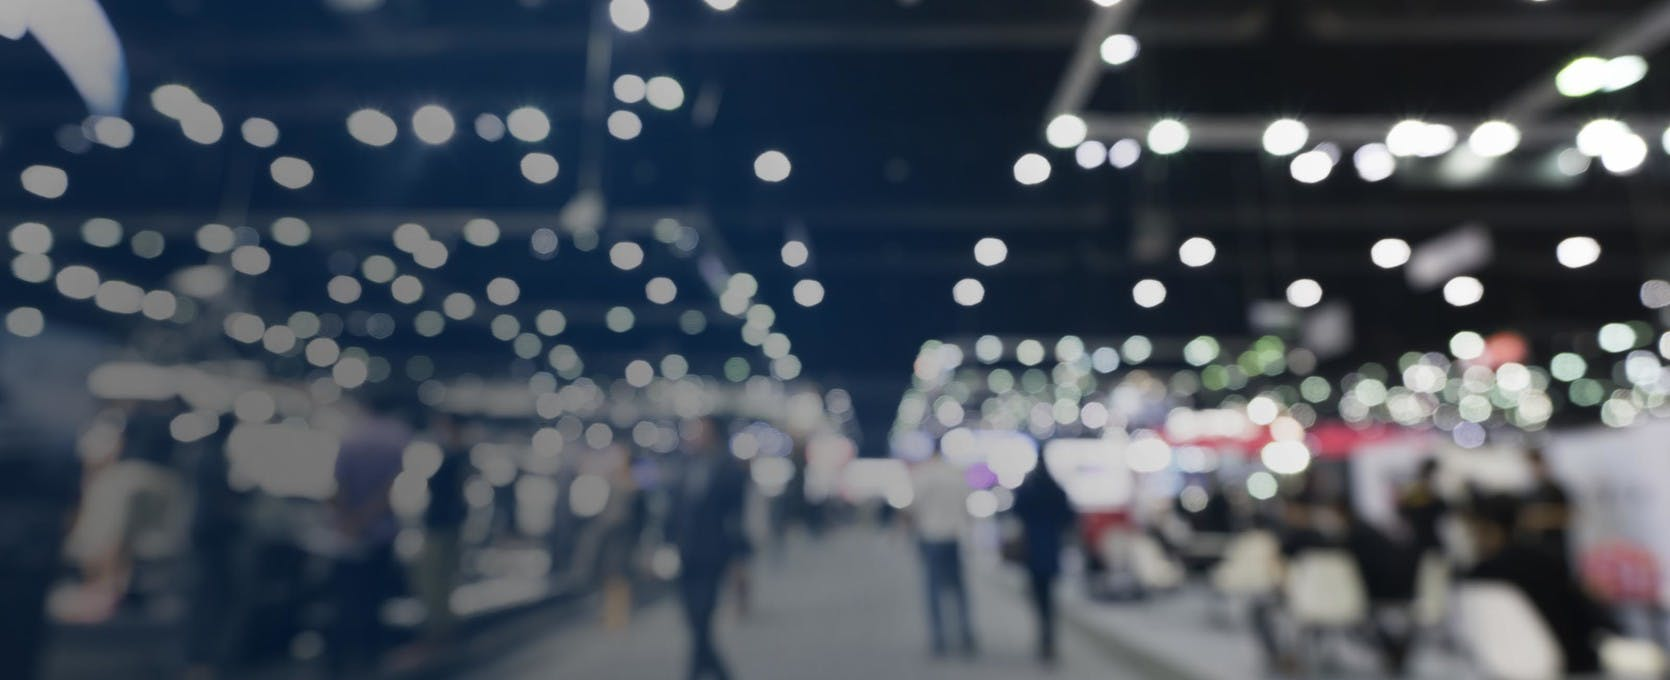 Sales expo floor and abstract lights